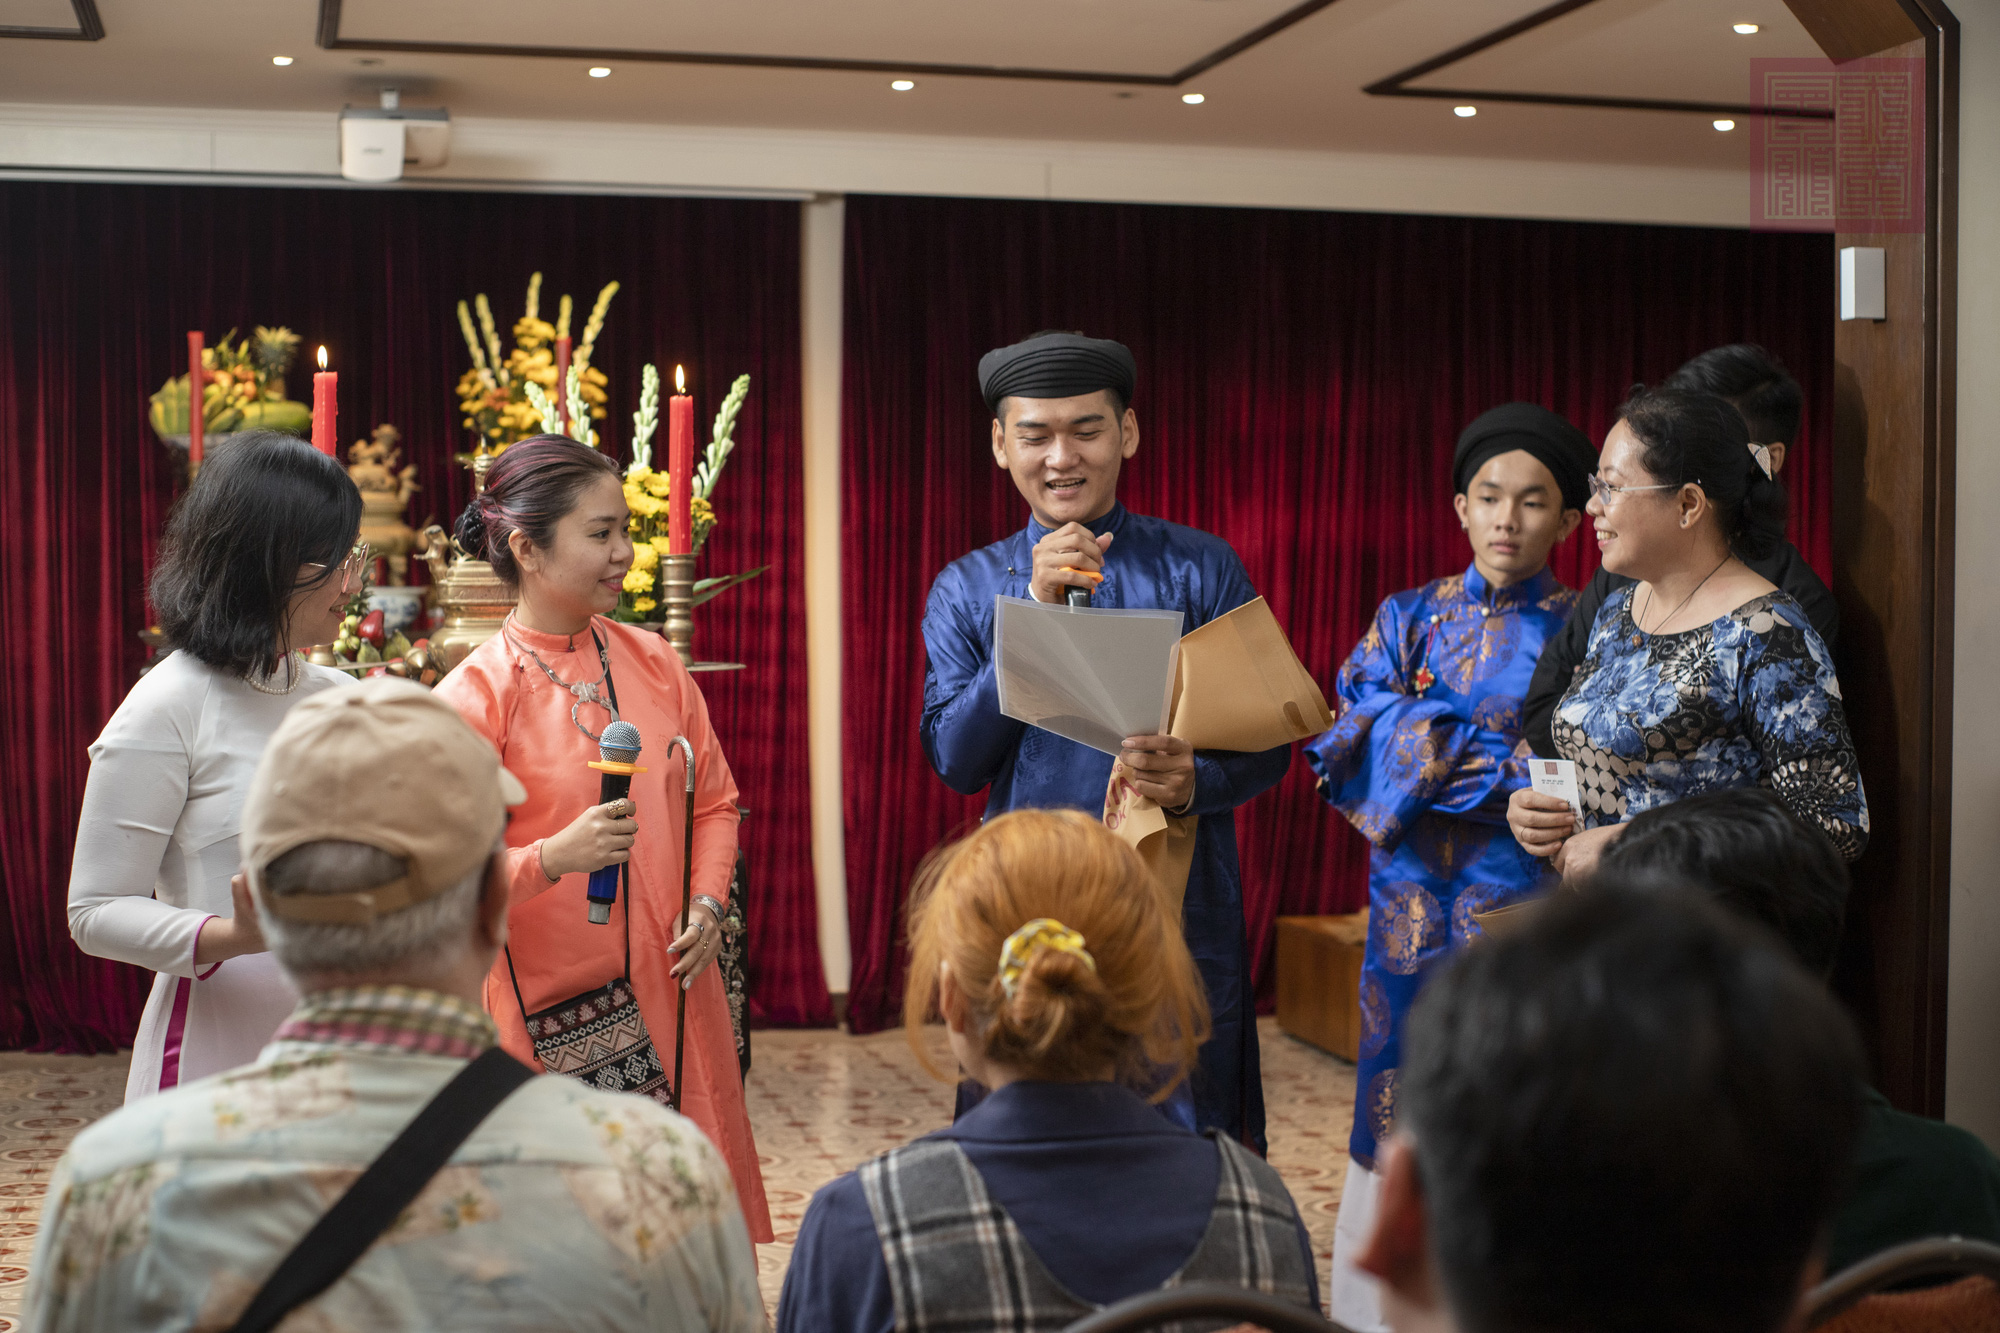 Vietnamese culture enthusiasts engage young audiences in country's ancient traditions